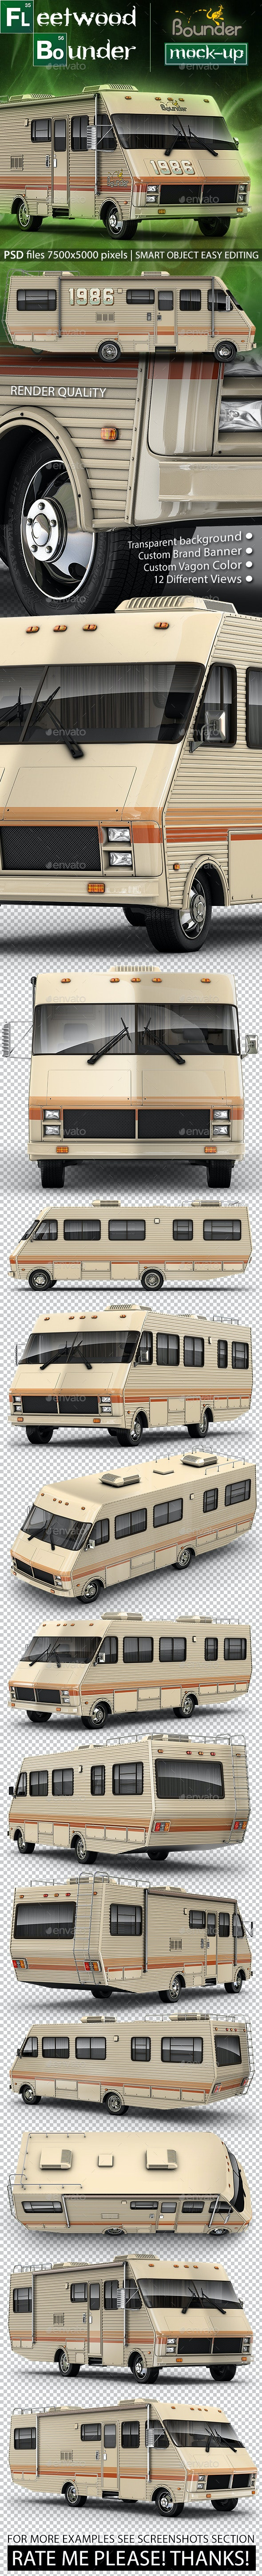 Fleetwood Bounder 1986 Mock-up from Breaking Bad - Vehicle Wraps Print